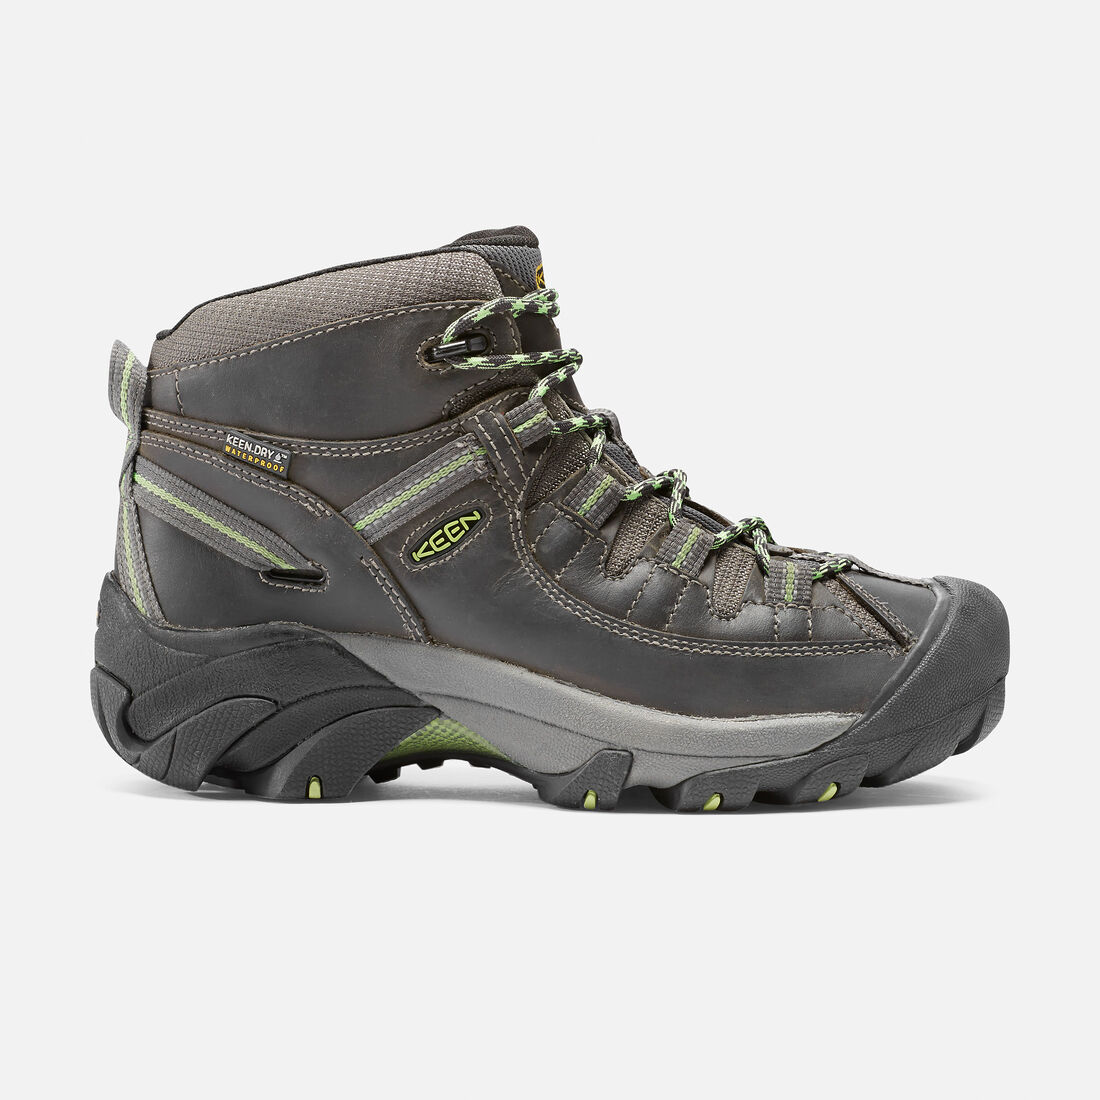 Keen Shoes Store Locator Usa